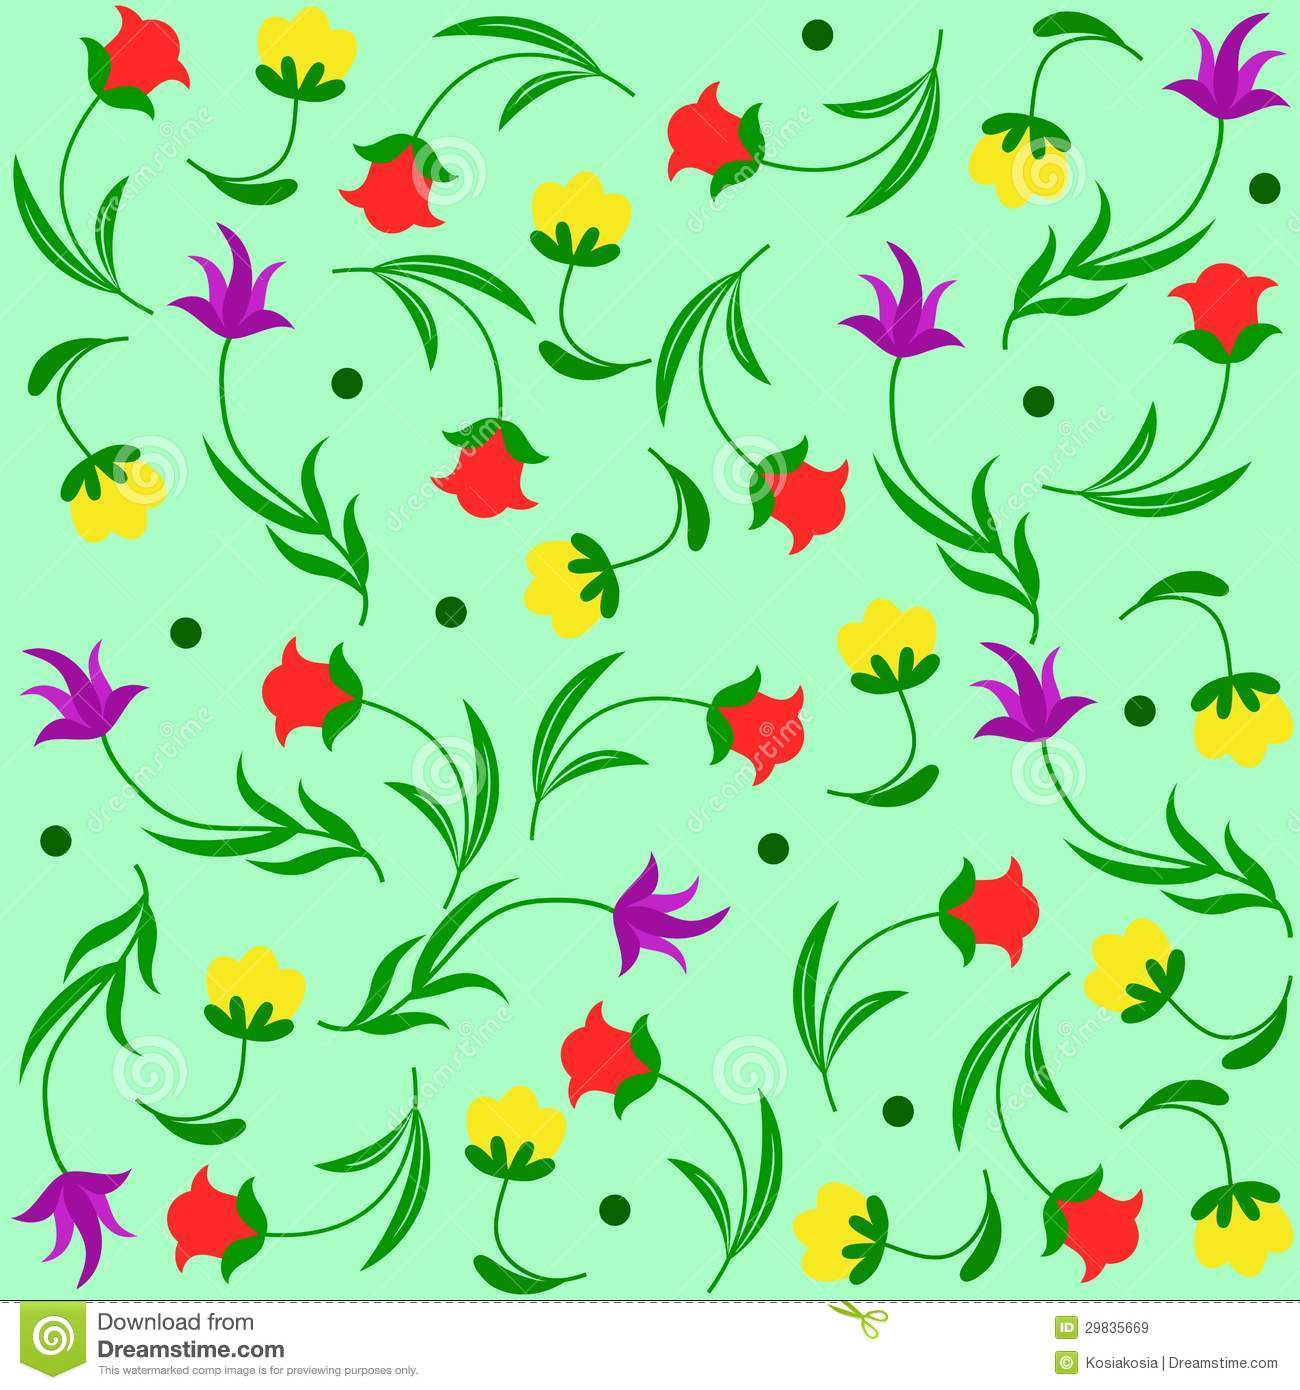 Backgroung floral